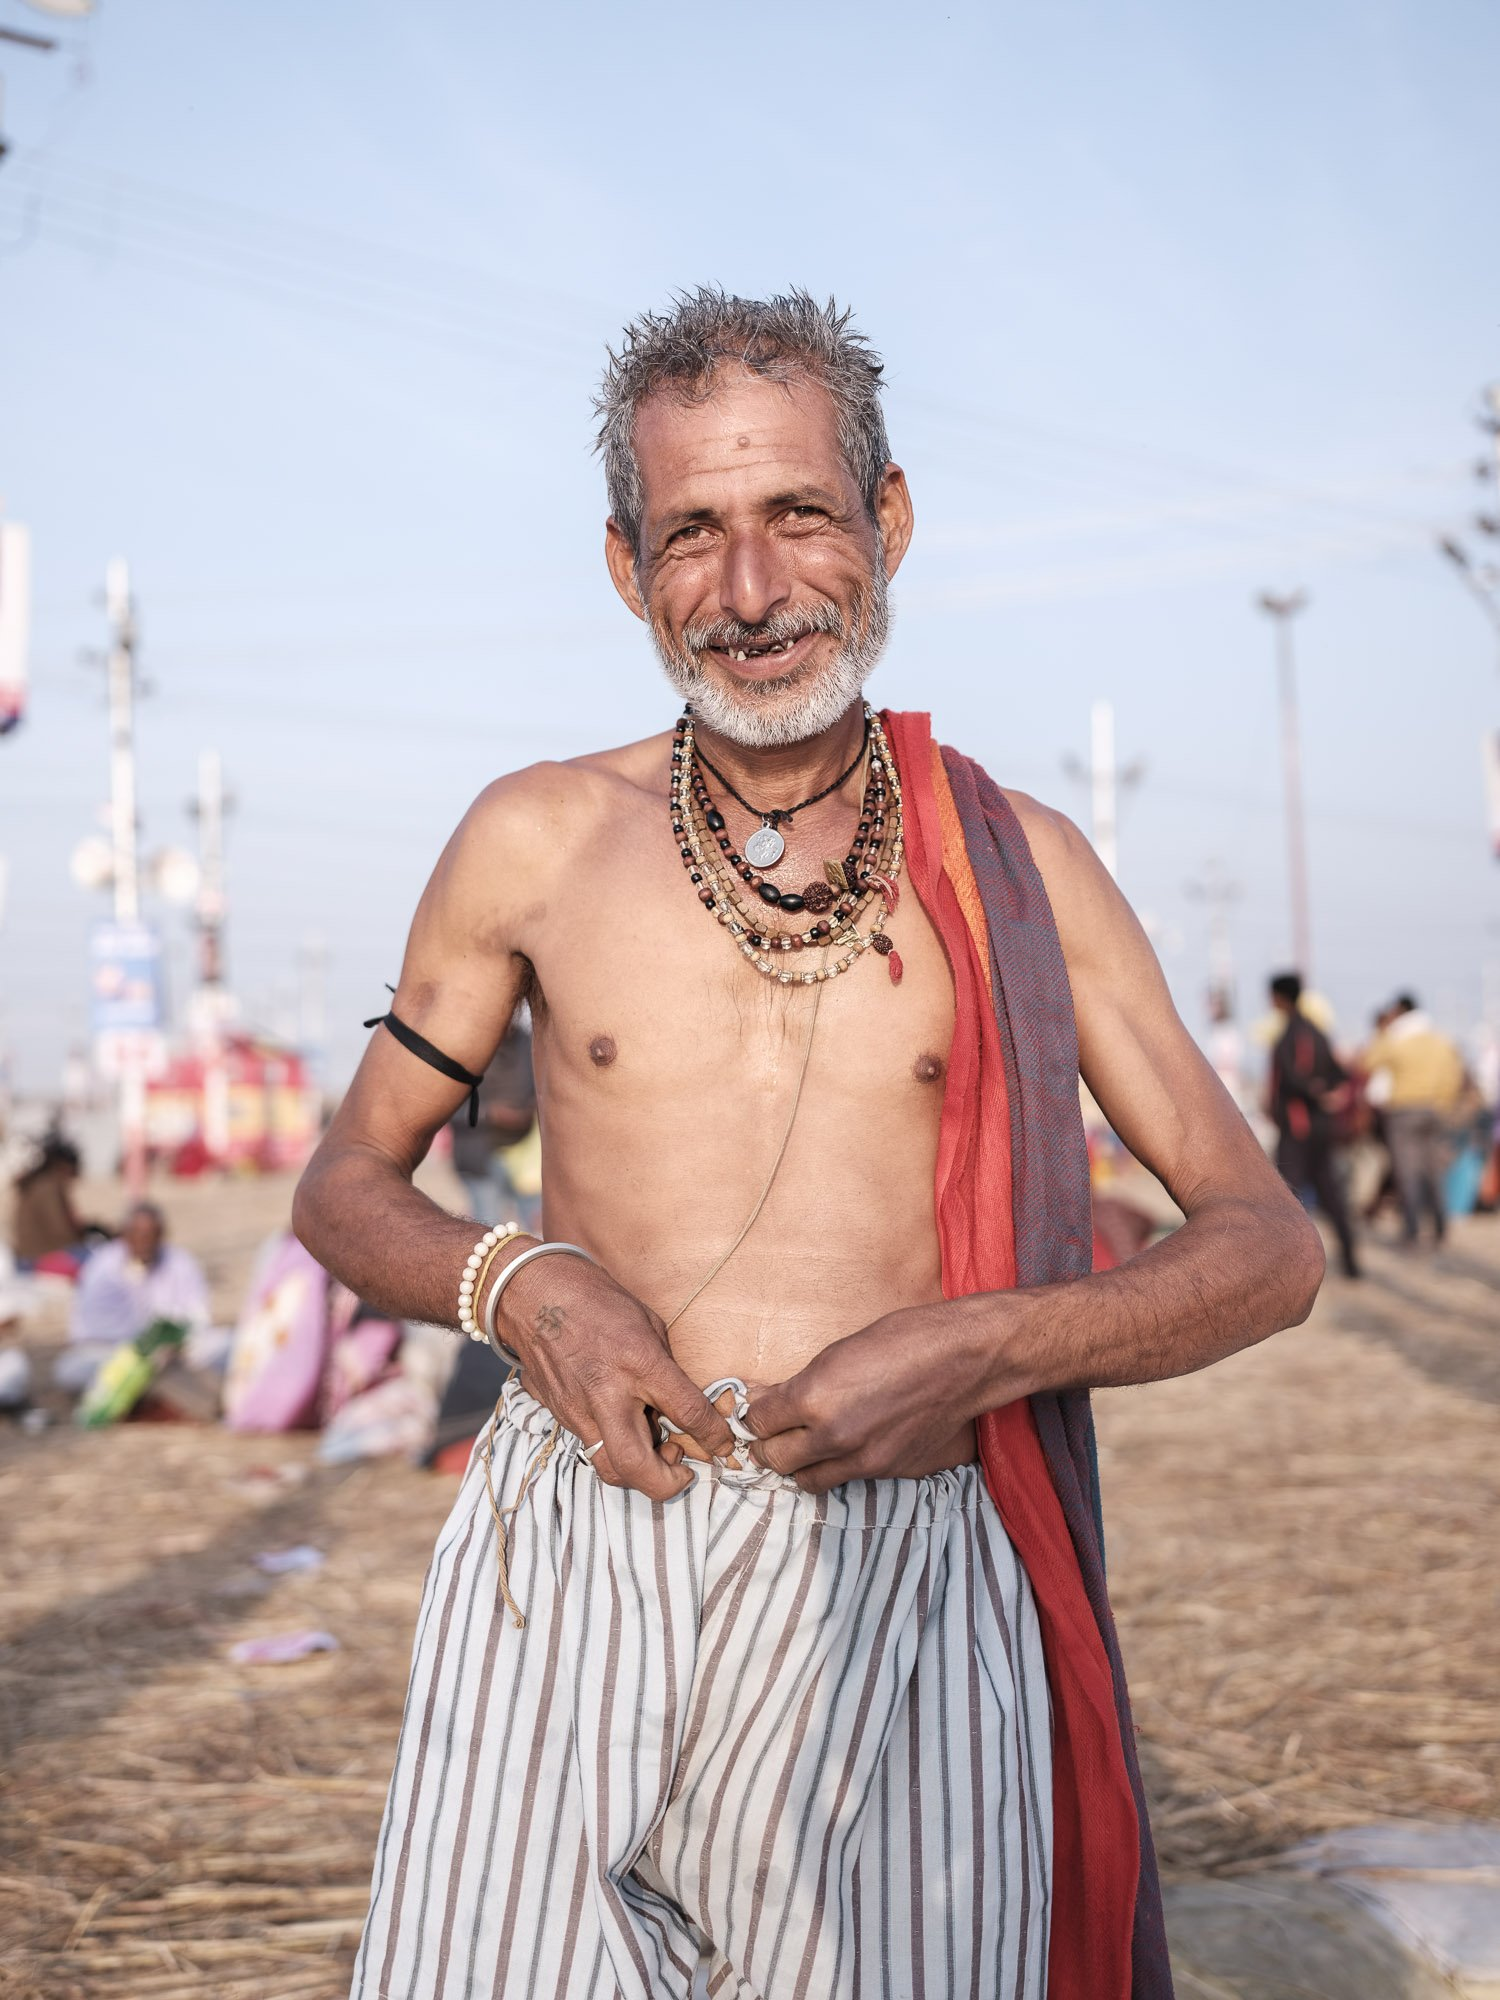 after bath man pilgrims Kumbh mela 2019 India Allahabad Prayagraj Ardh hindu religious Festival event rivers photographer jose jeuland photography